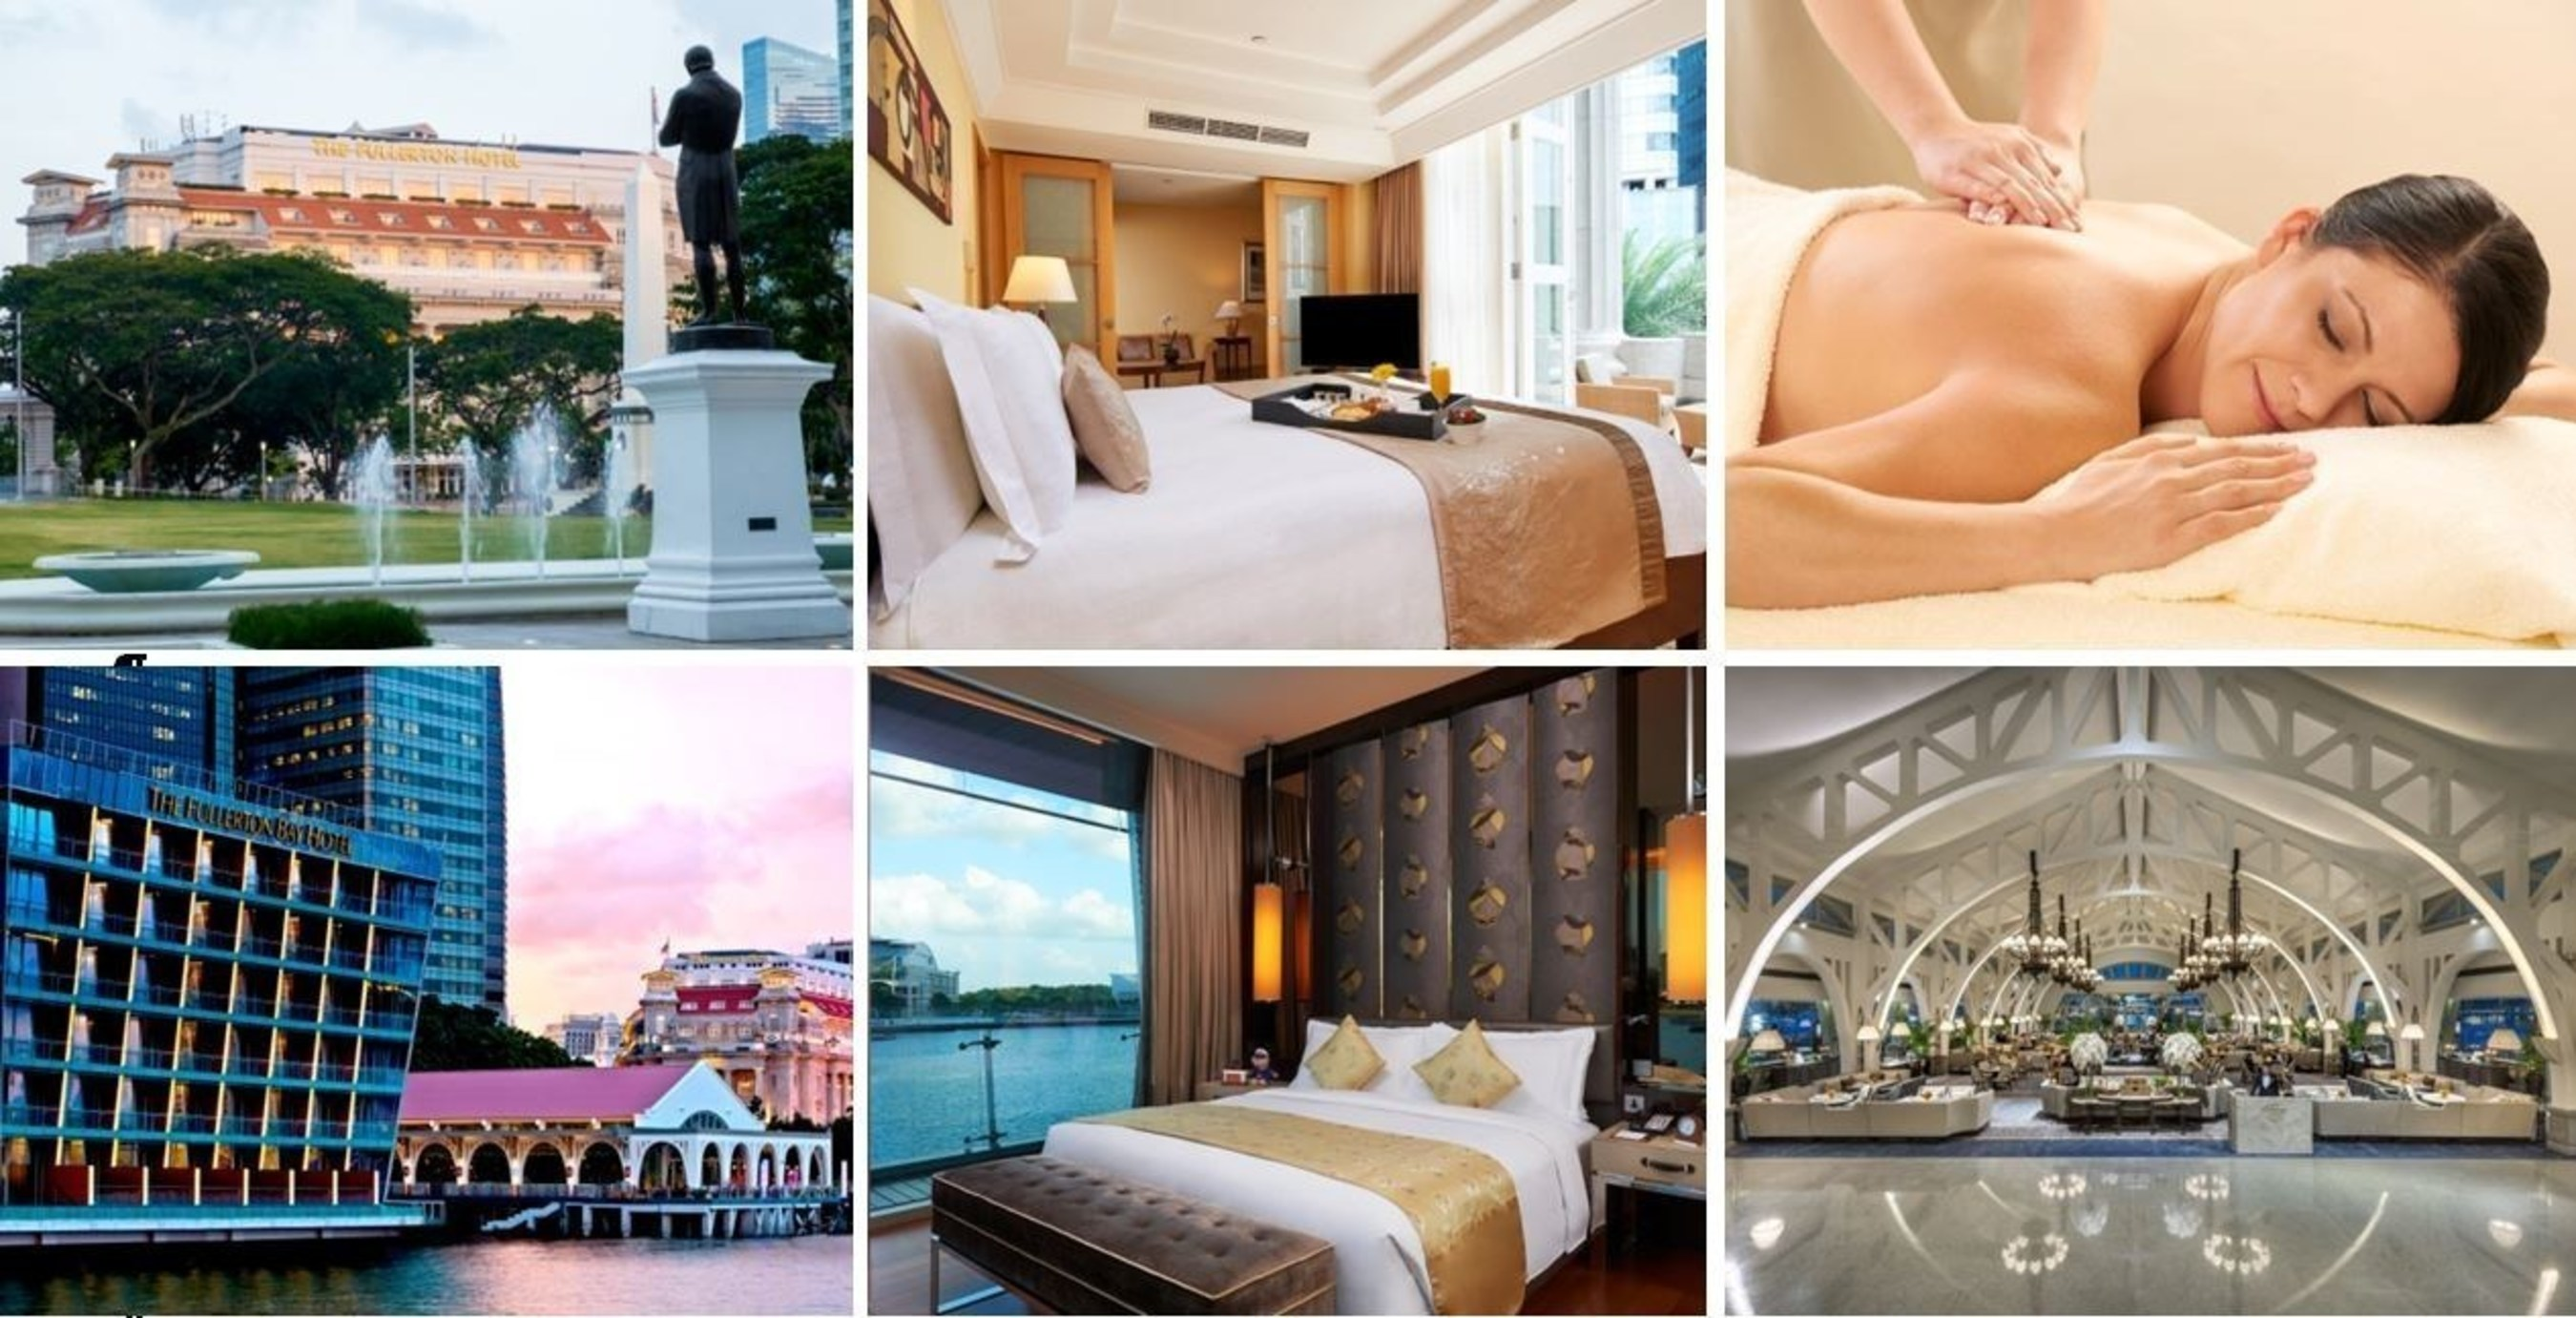 The Fullerton Hotels Launches New Global Website: www.fullertonhotels.com